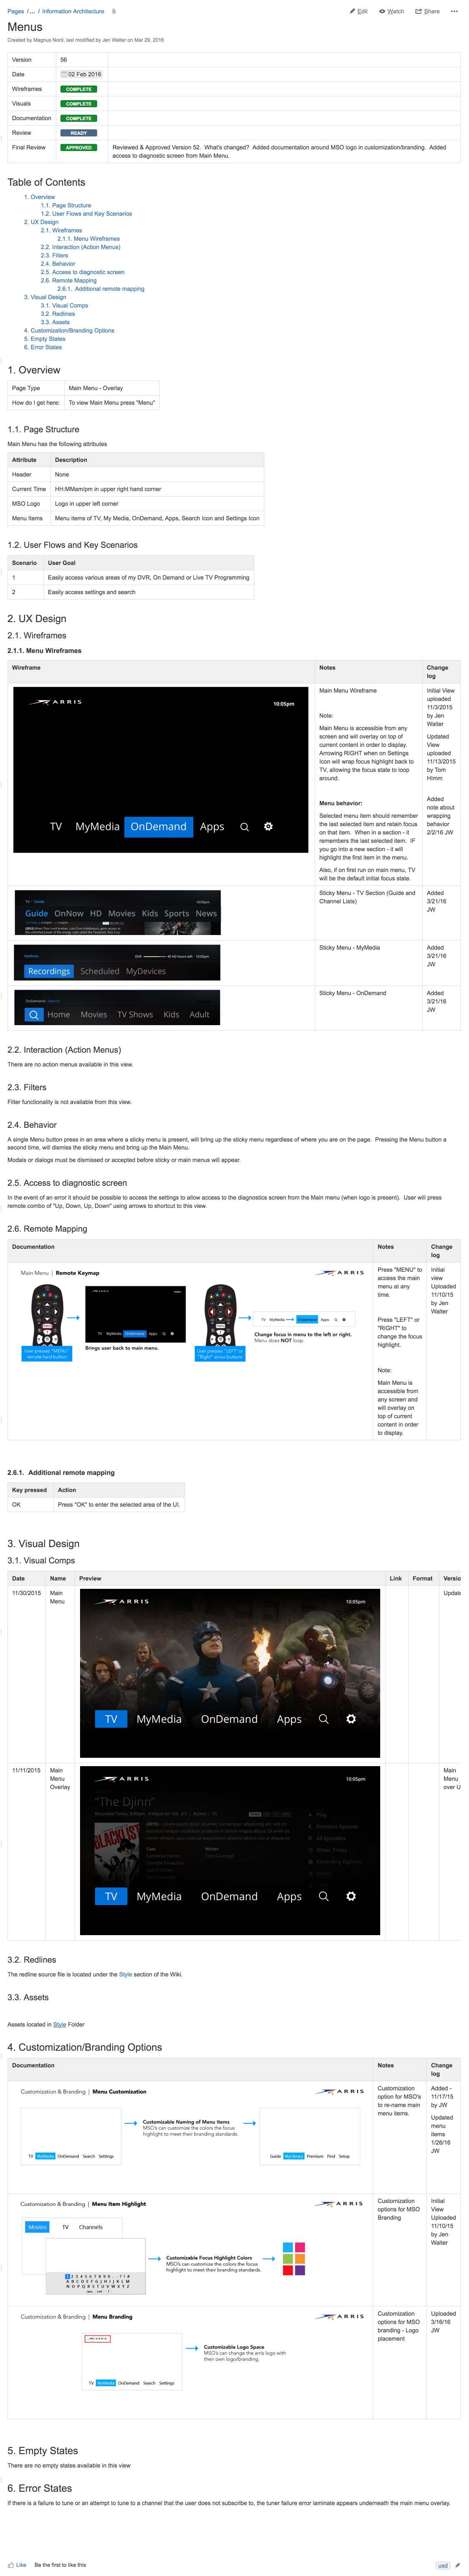 Unity 2.0 Cable set top user interface On Demand video Display